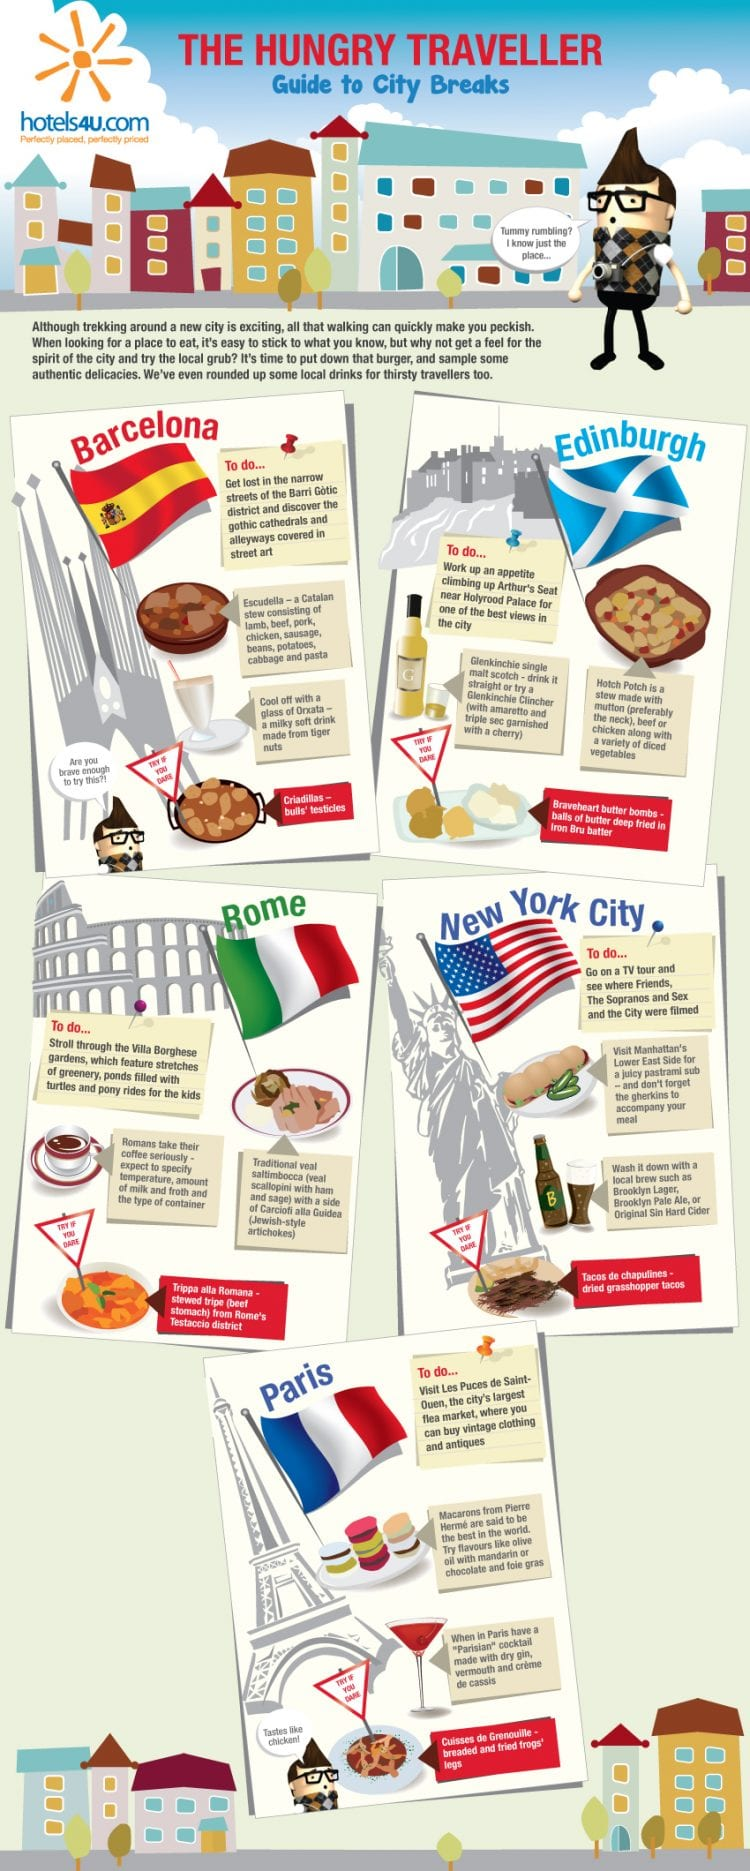 5 Capitals, 16 Eating Tips Your Guide Won't Tell You About (Infographic)